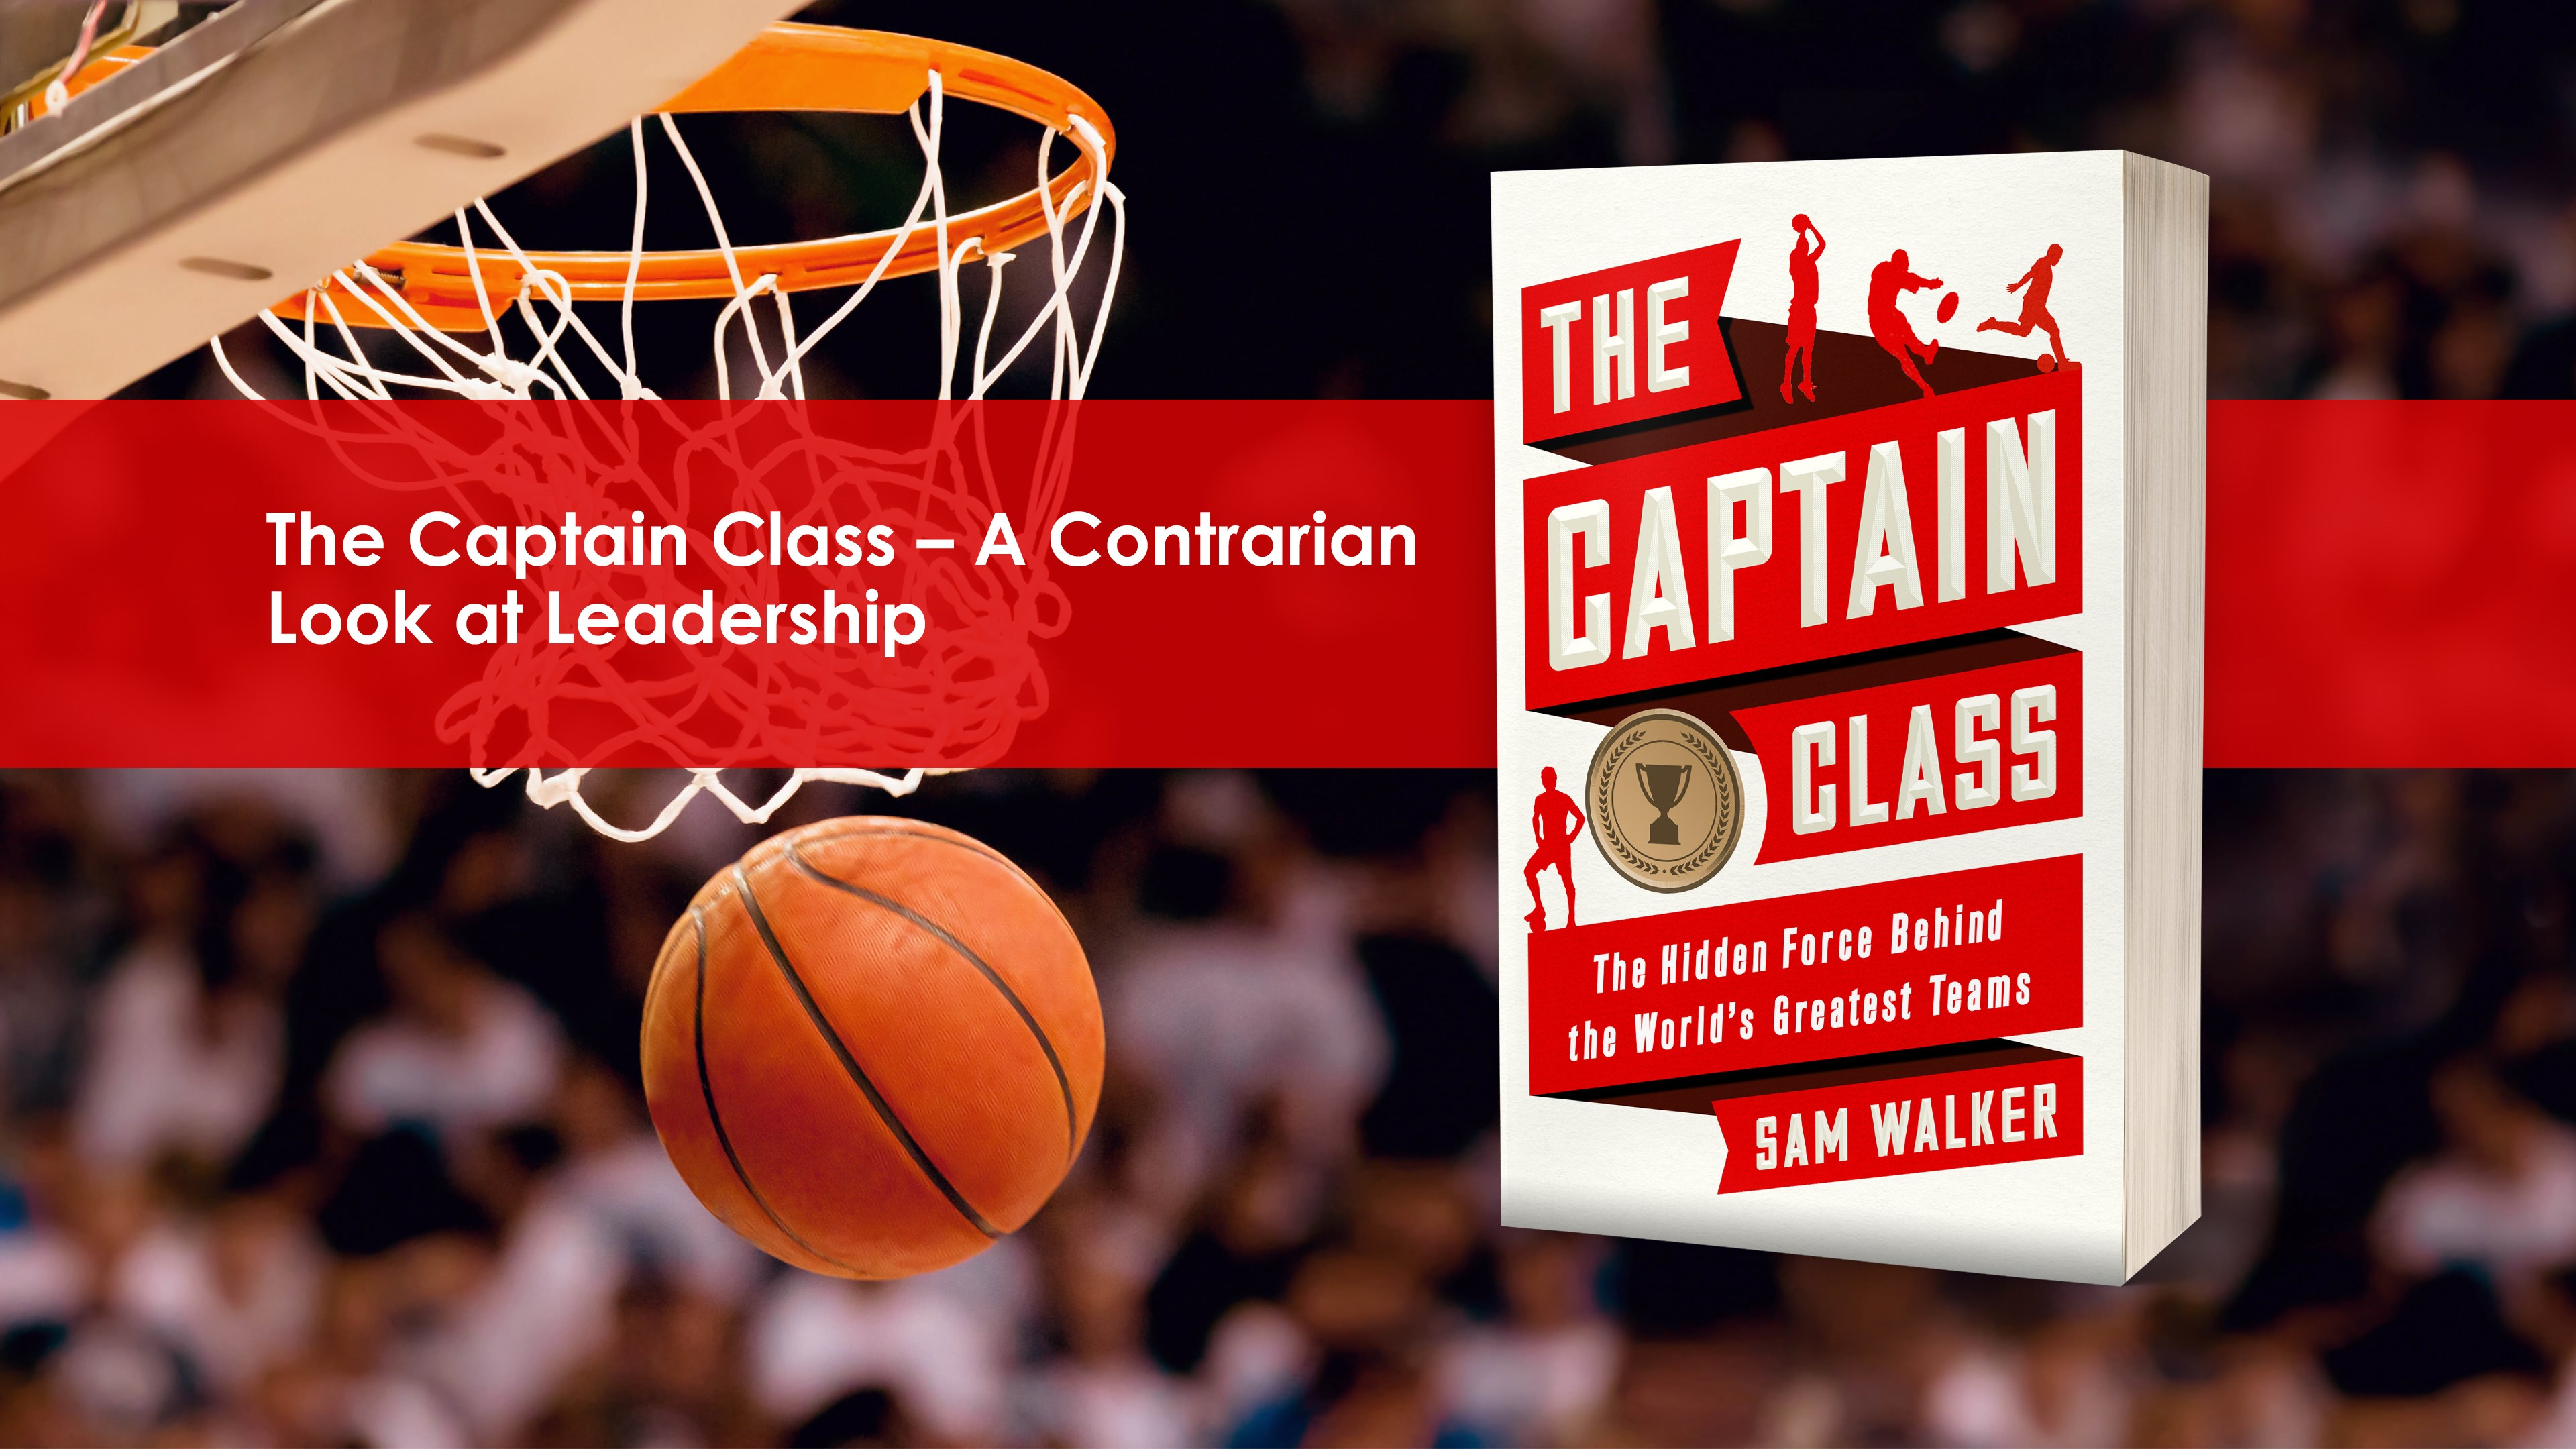 The Captain Class – A Contrarian Look at Leadership